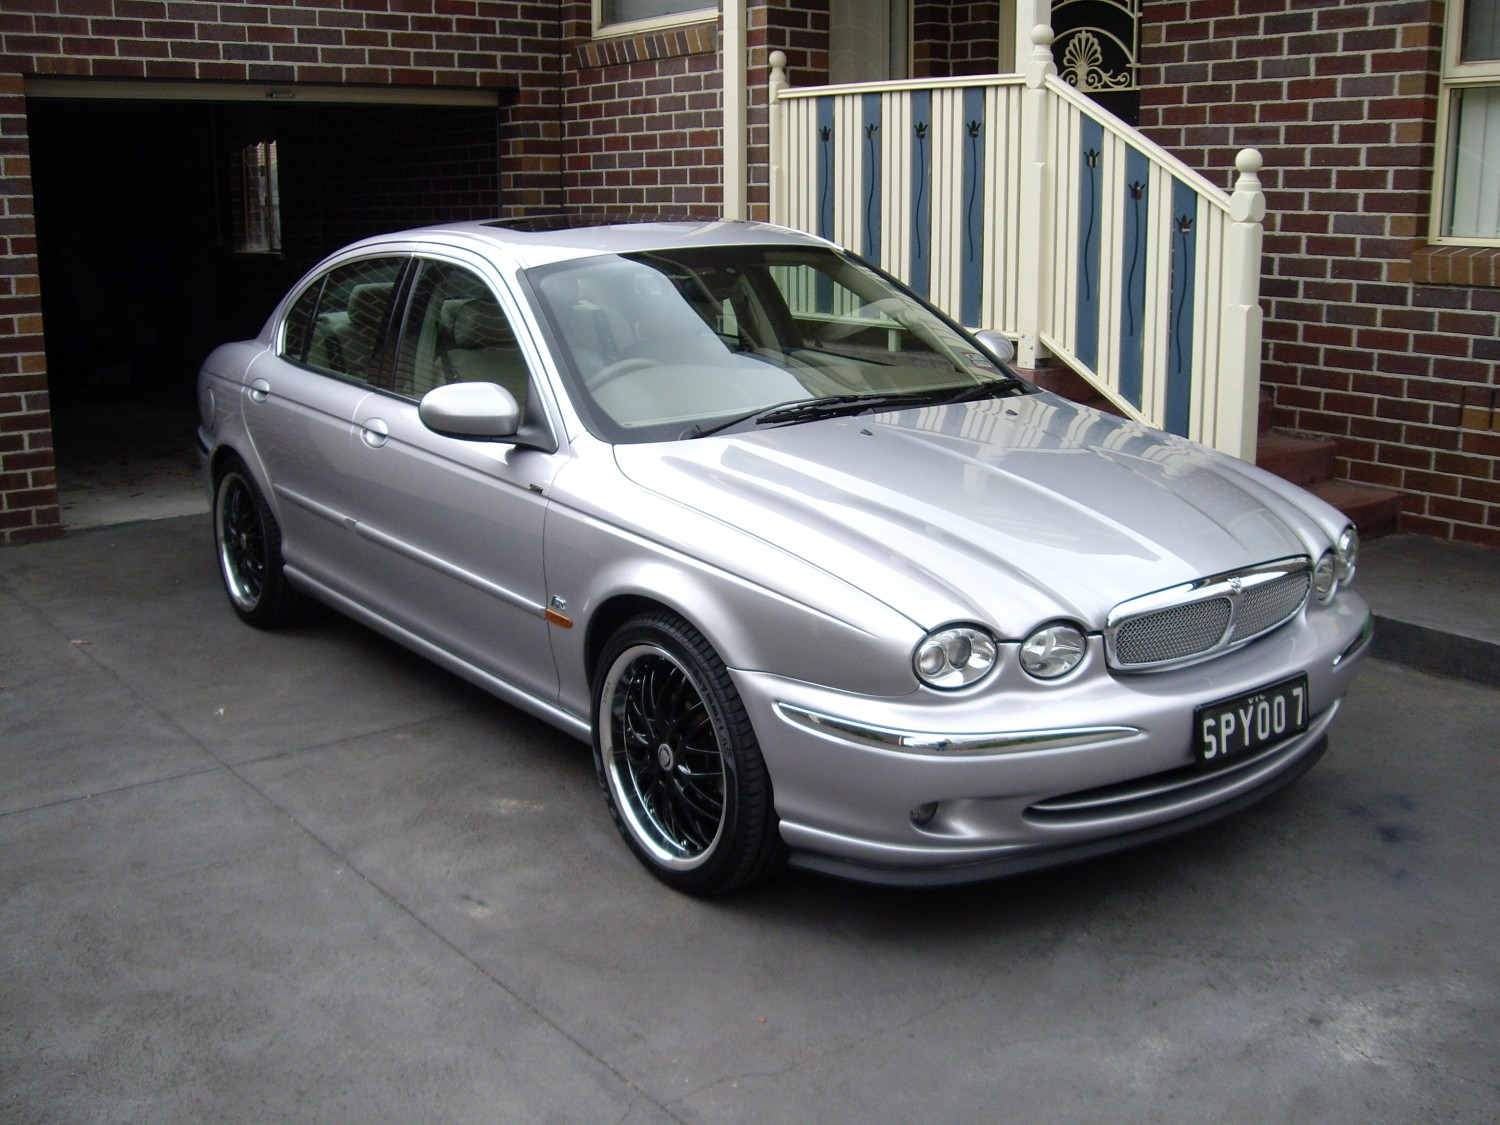 2001 jaguar x type r show shine shannons club